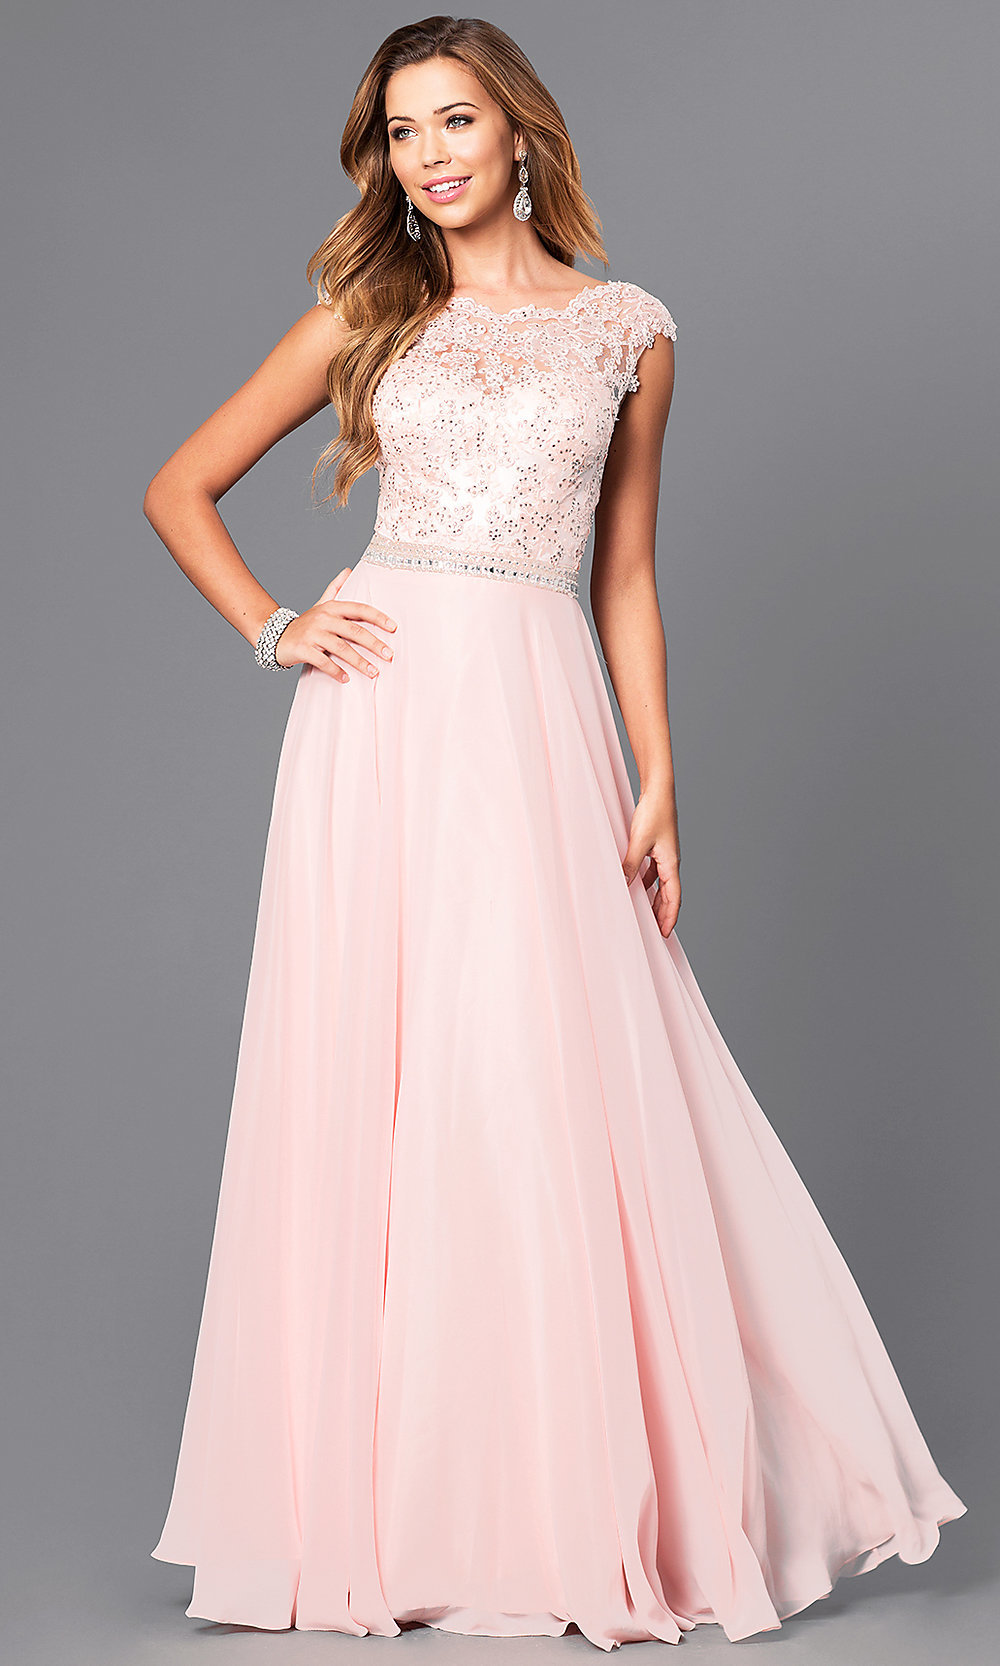 Lace Illusion Long Pastel Prom Dress Promgirl